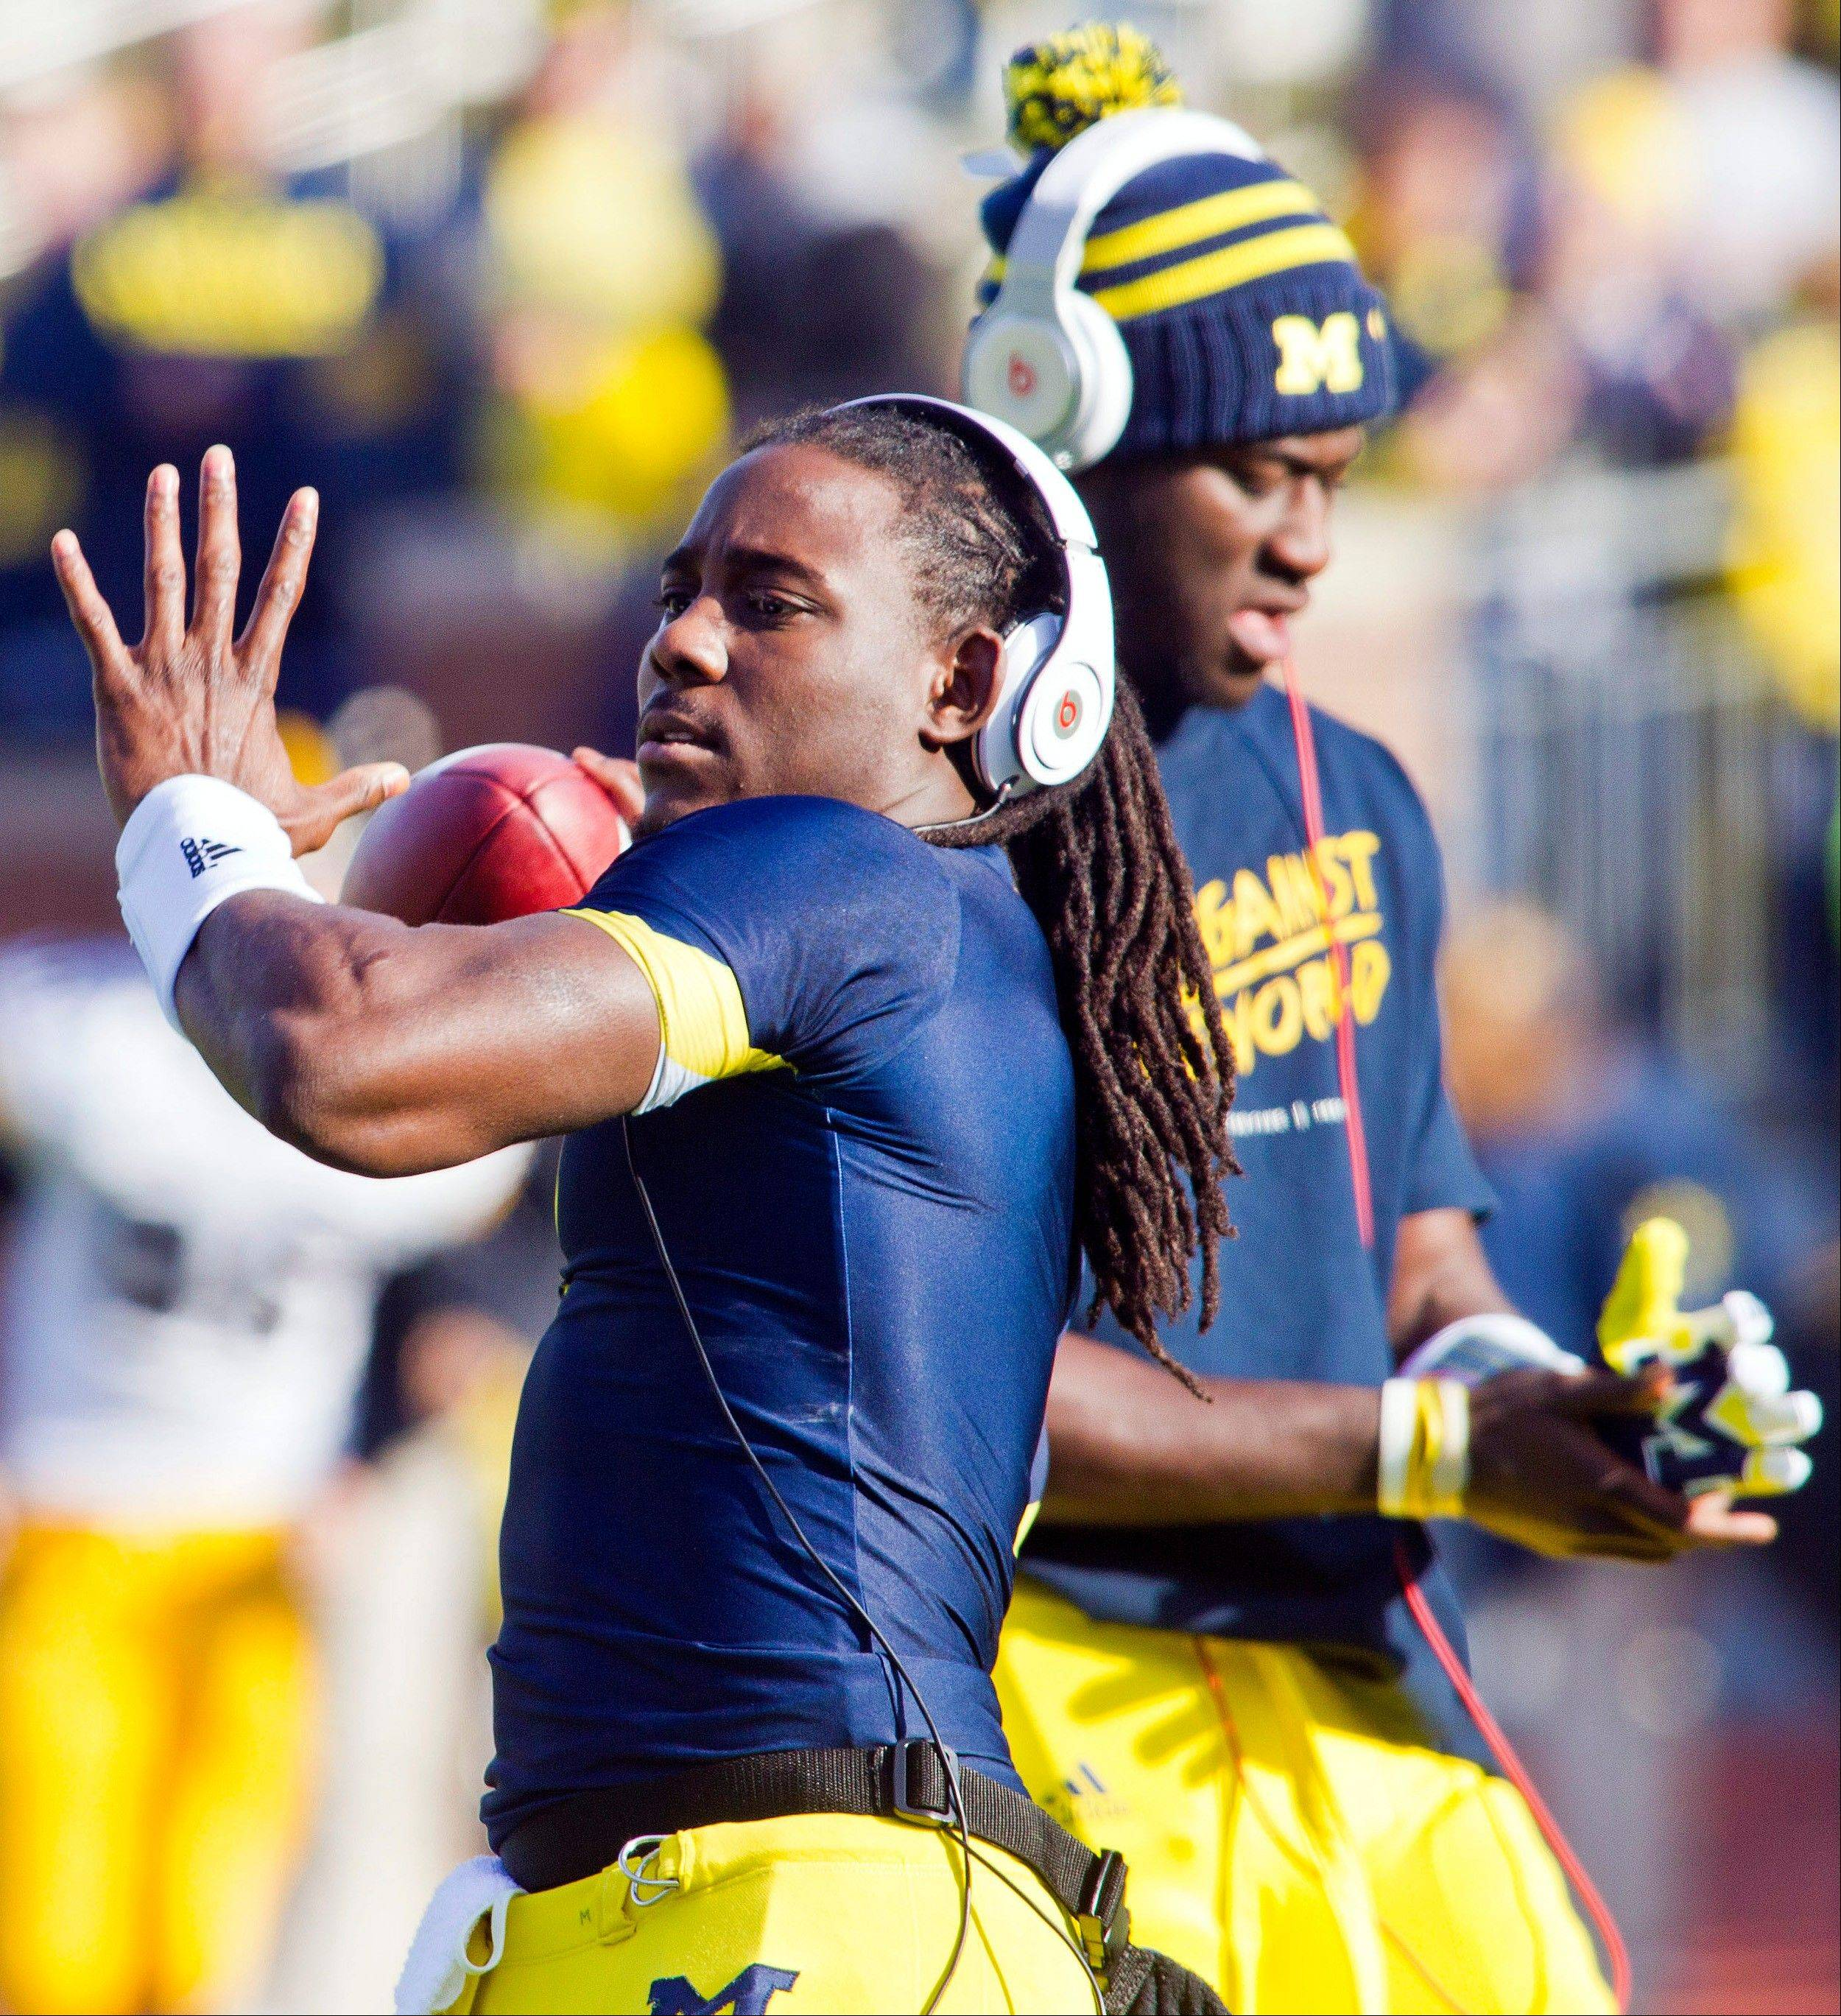 Michigan quarterback Denard Robinson, front, warms up beside fellow quarterback Devin Gardner before a game. Robinson could see action at tailback on Saturday as the Wolverines take on unbeaten Ohio State.